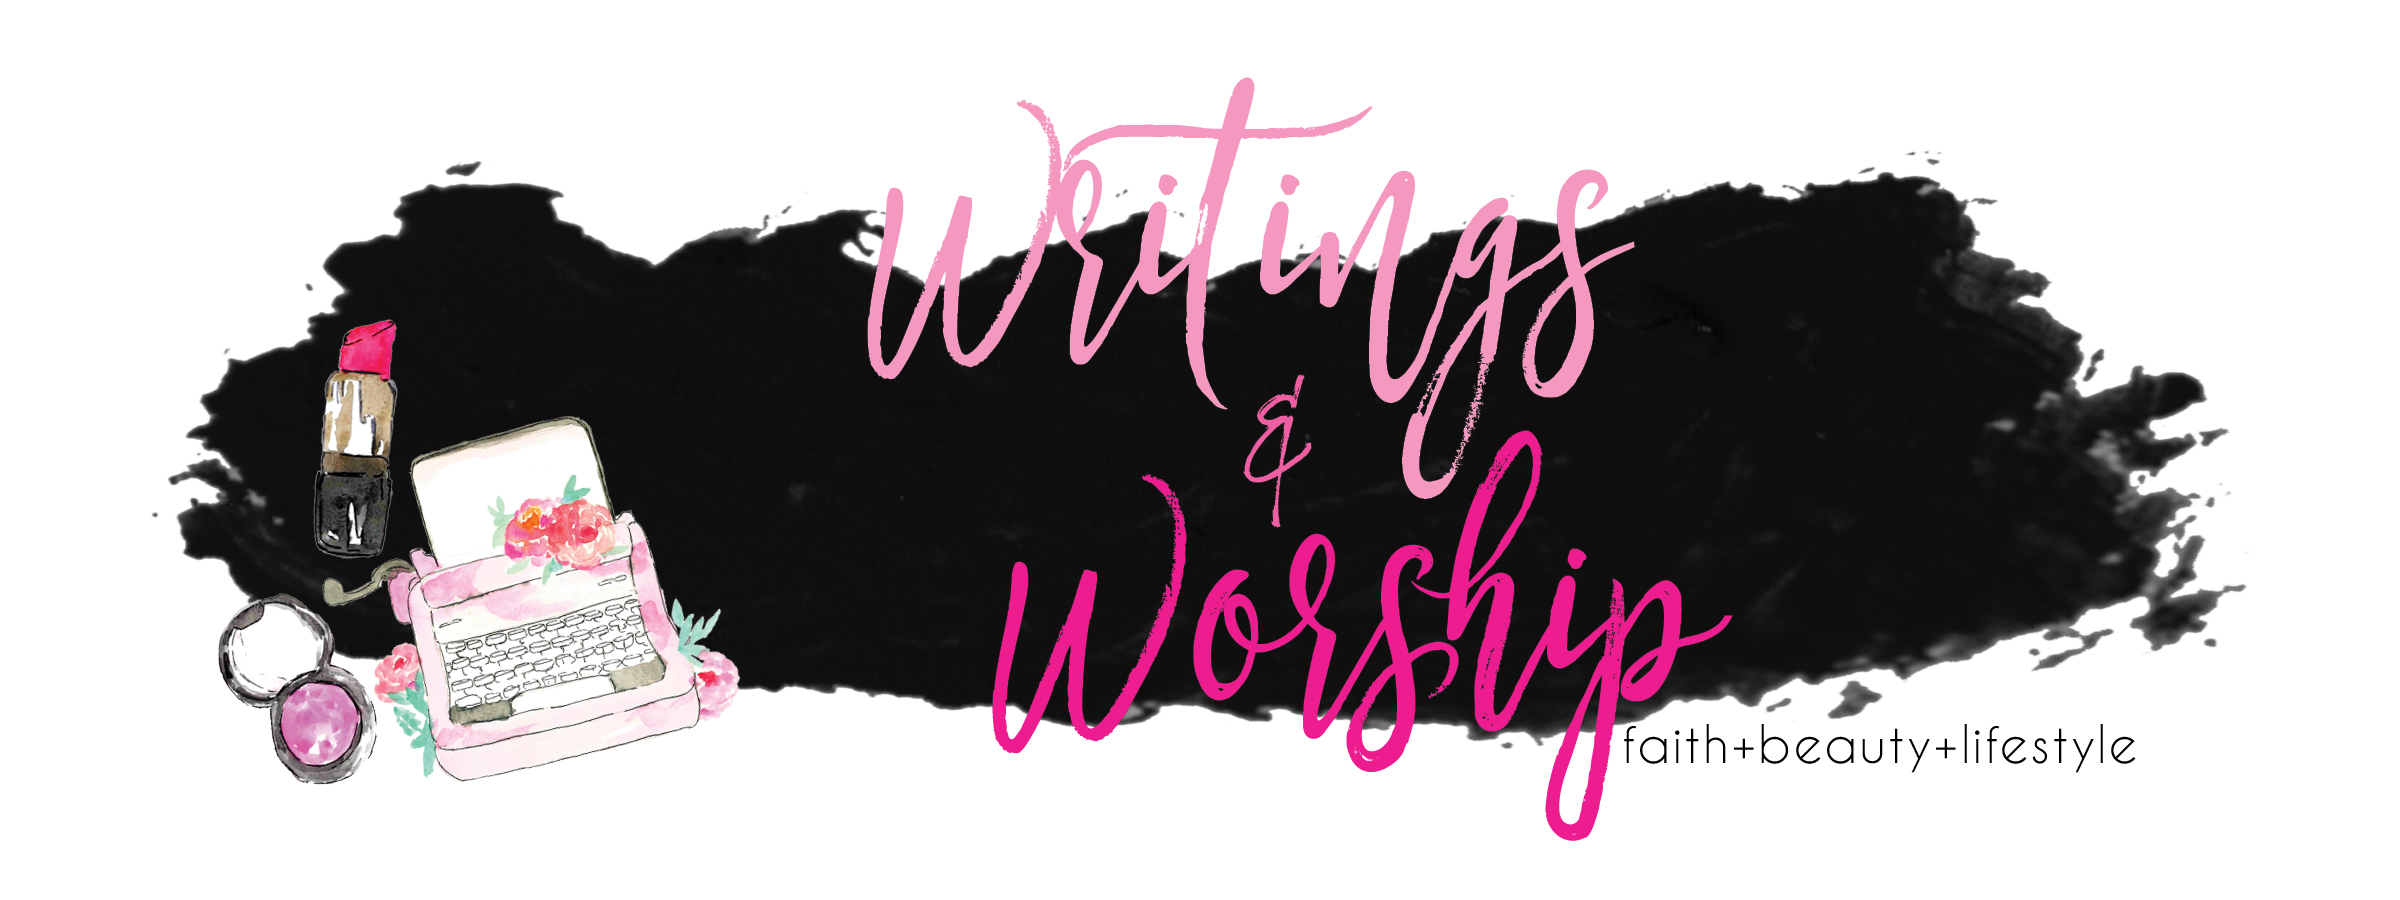 Writings & Worship